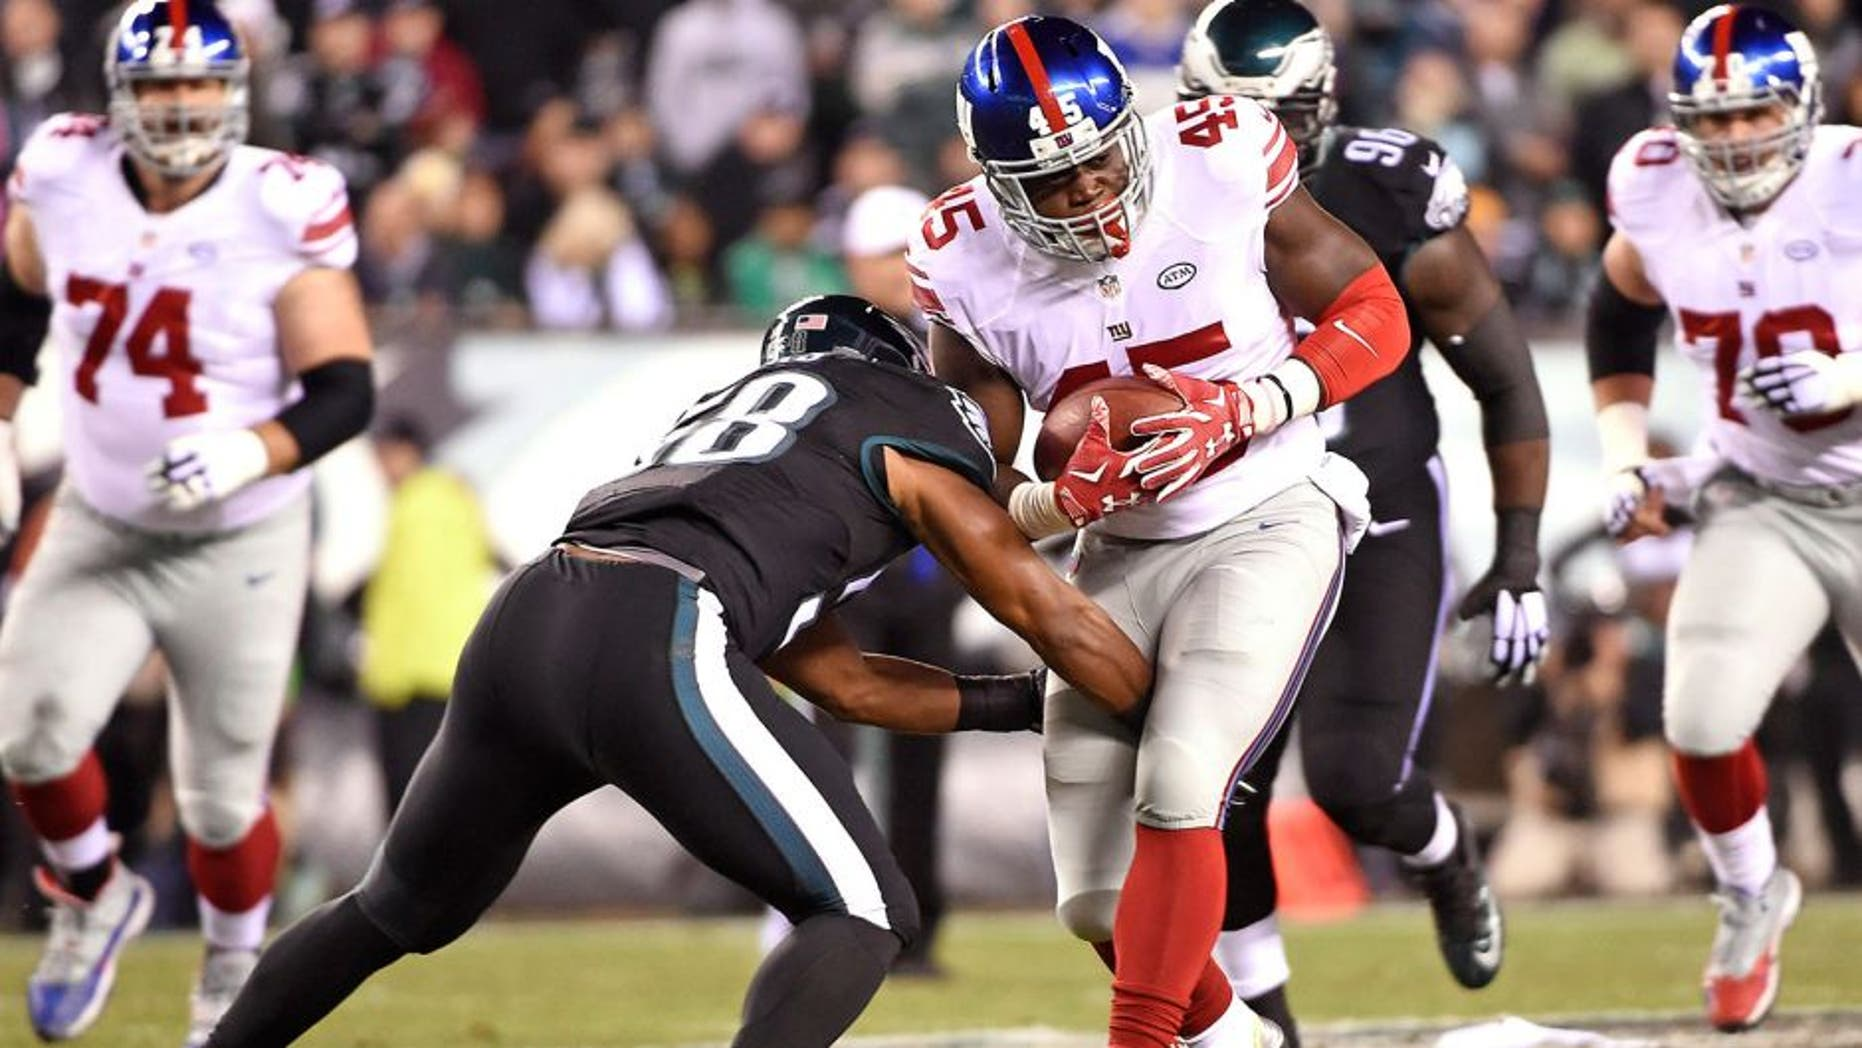 Oct 19, 2015; Philadelphia, PA, USA; New York Giants tight end Will Tye (45) is tackled by Philadelphia Eagles outside linebacker Jordan Hicks (58) during the first quarter at Lincoln Financial Field. Mandatory Credit: Eric Hartline-USA TODAY Sports